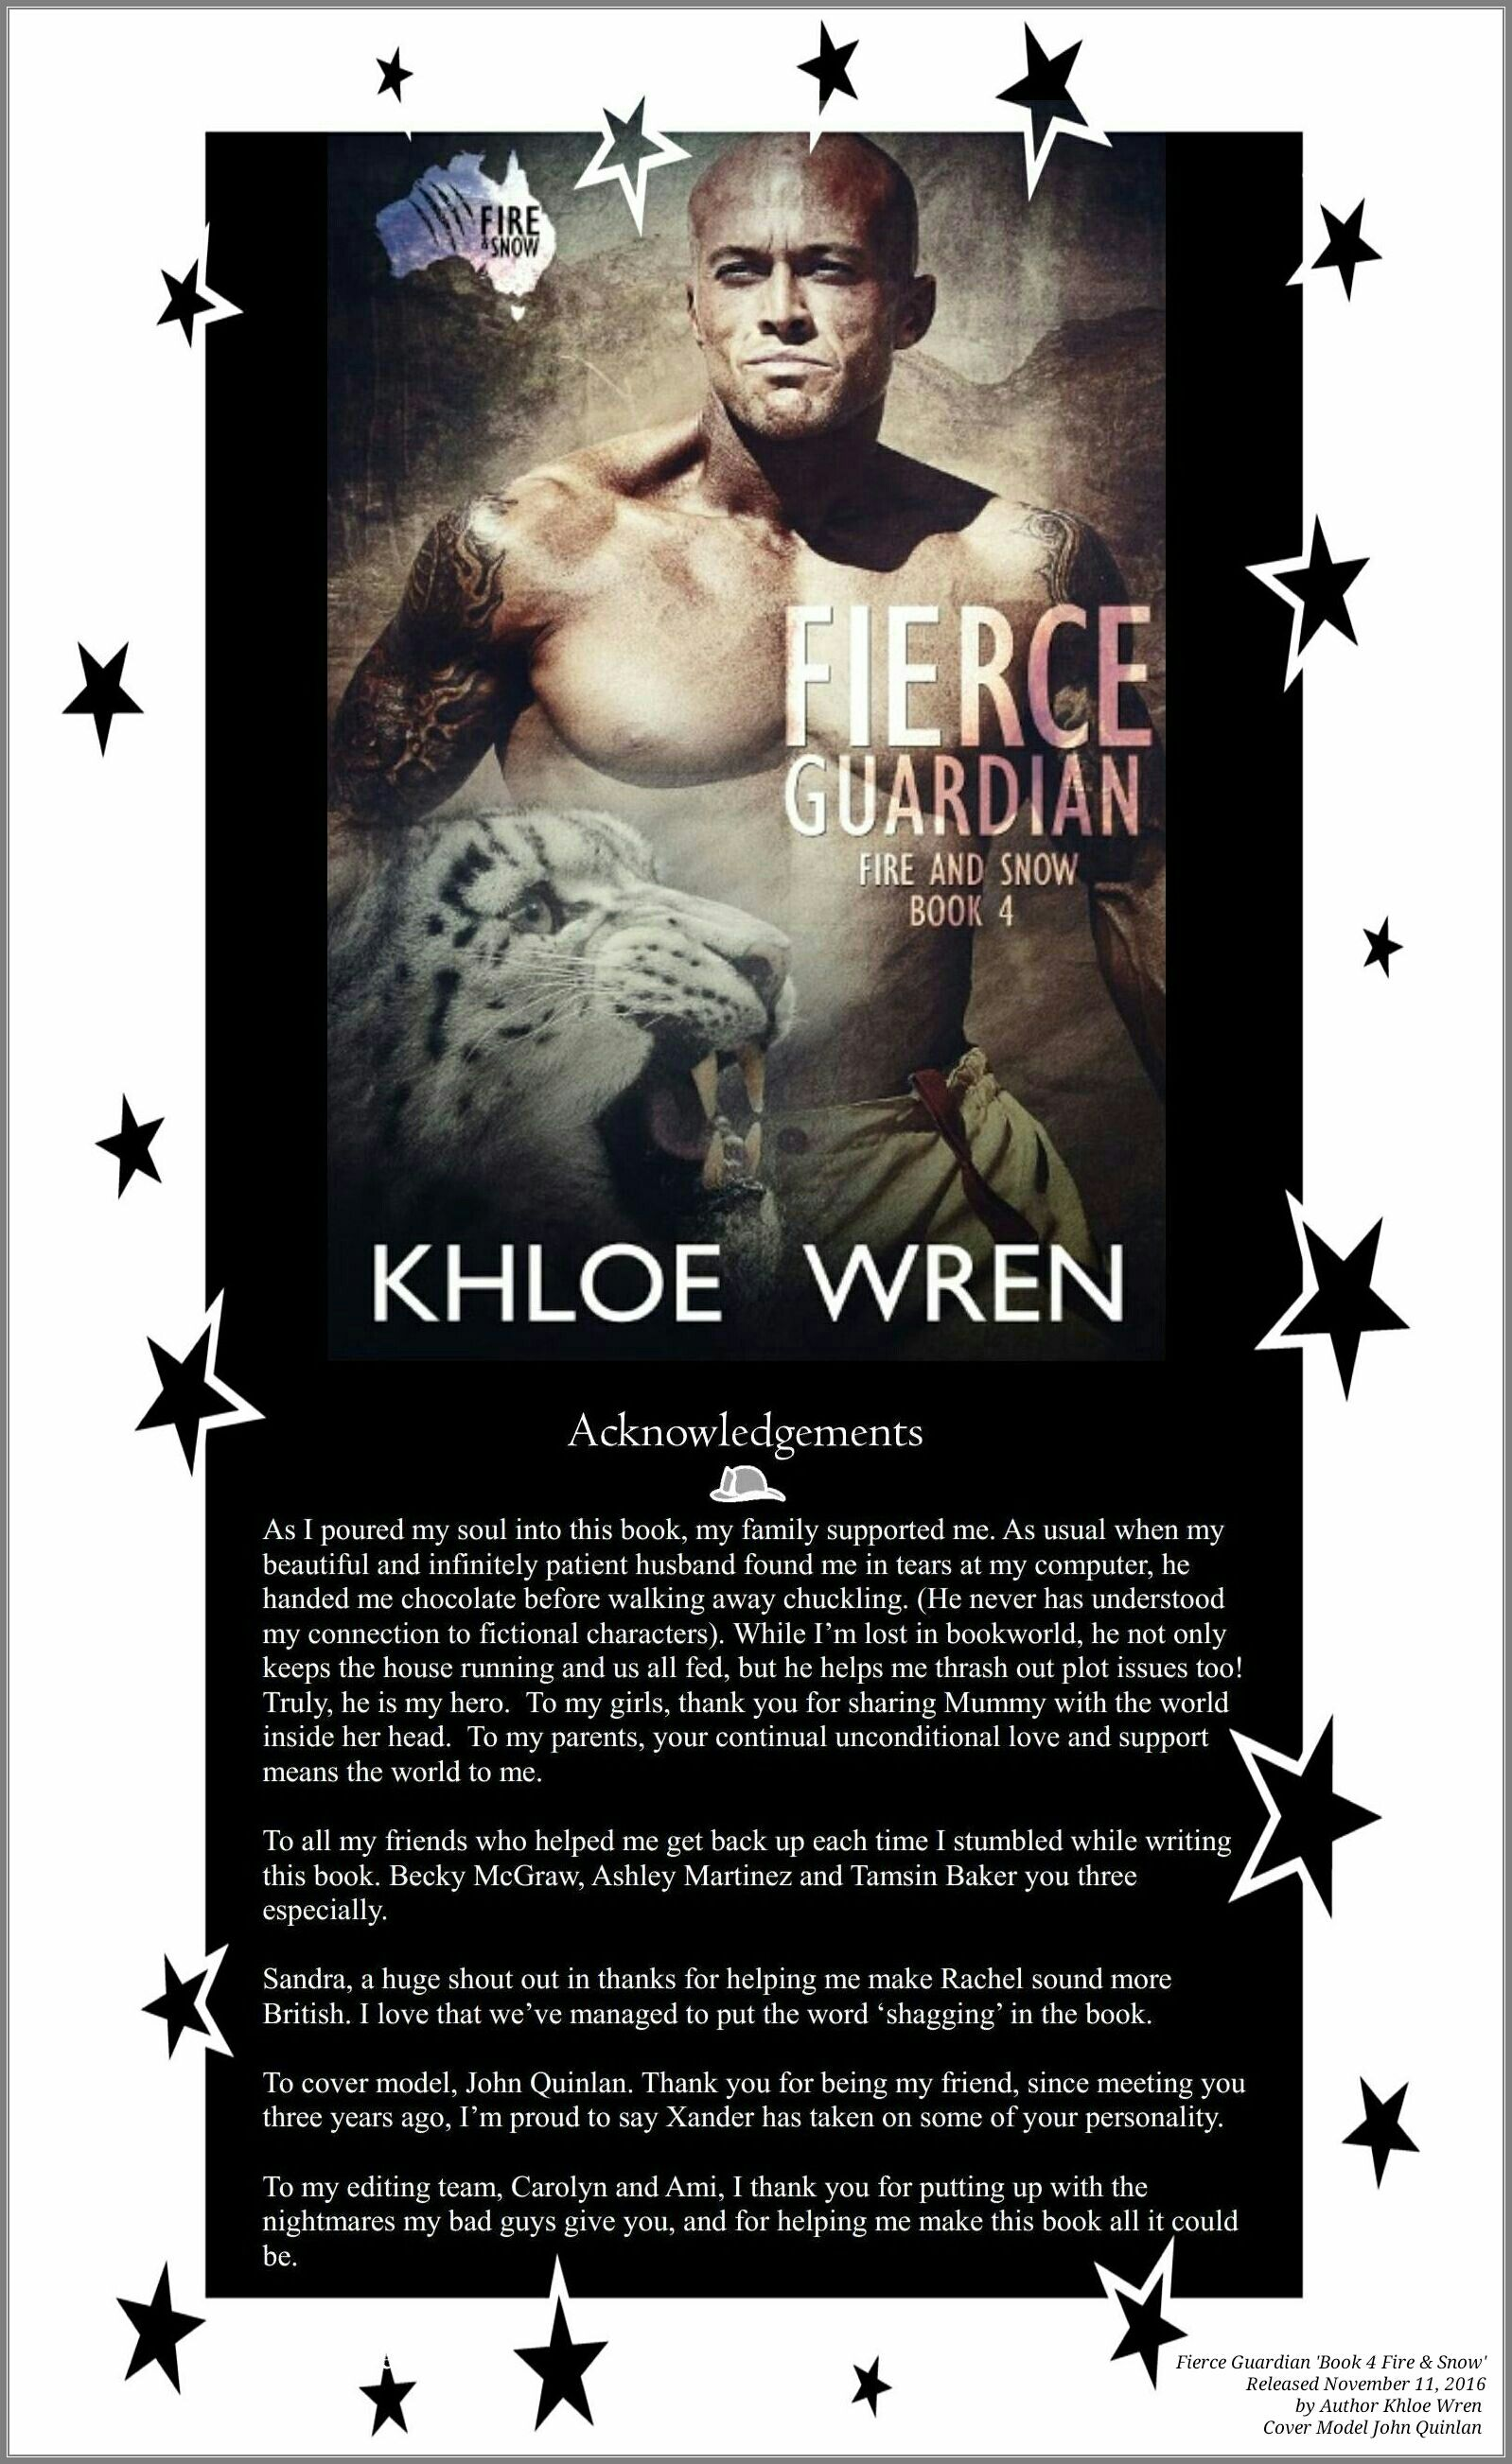 Romance Cover Model & Actor John Quinlan as Xander by Khloe Wren #JohnQuinlan